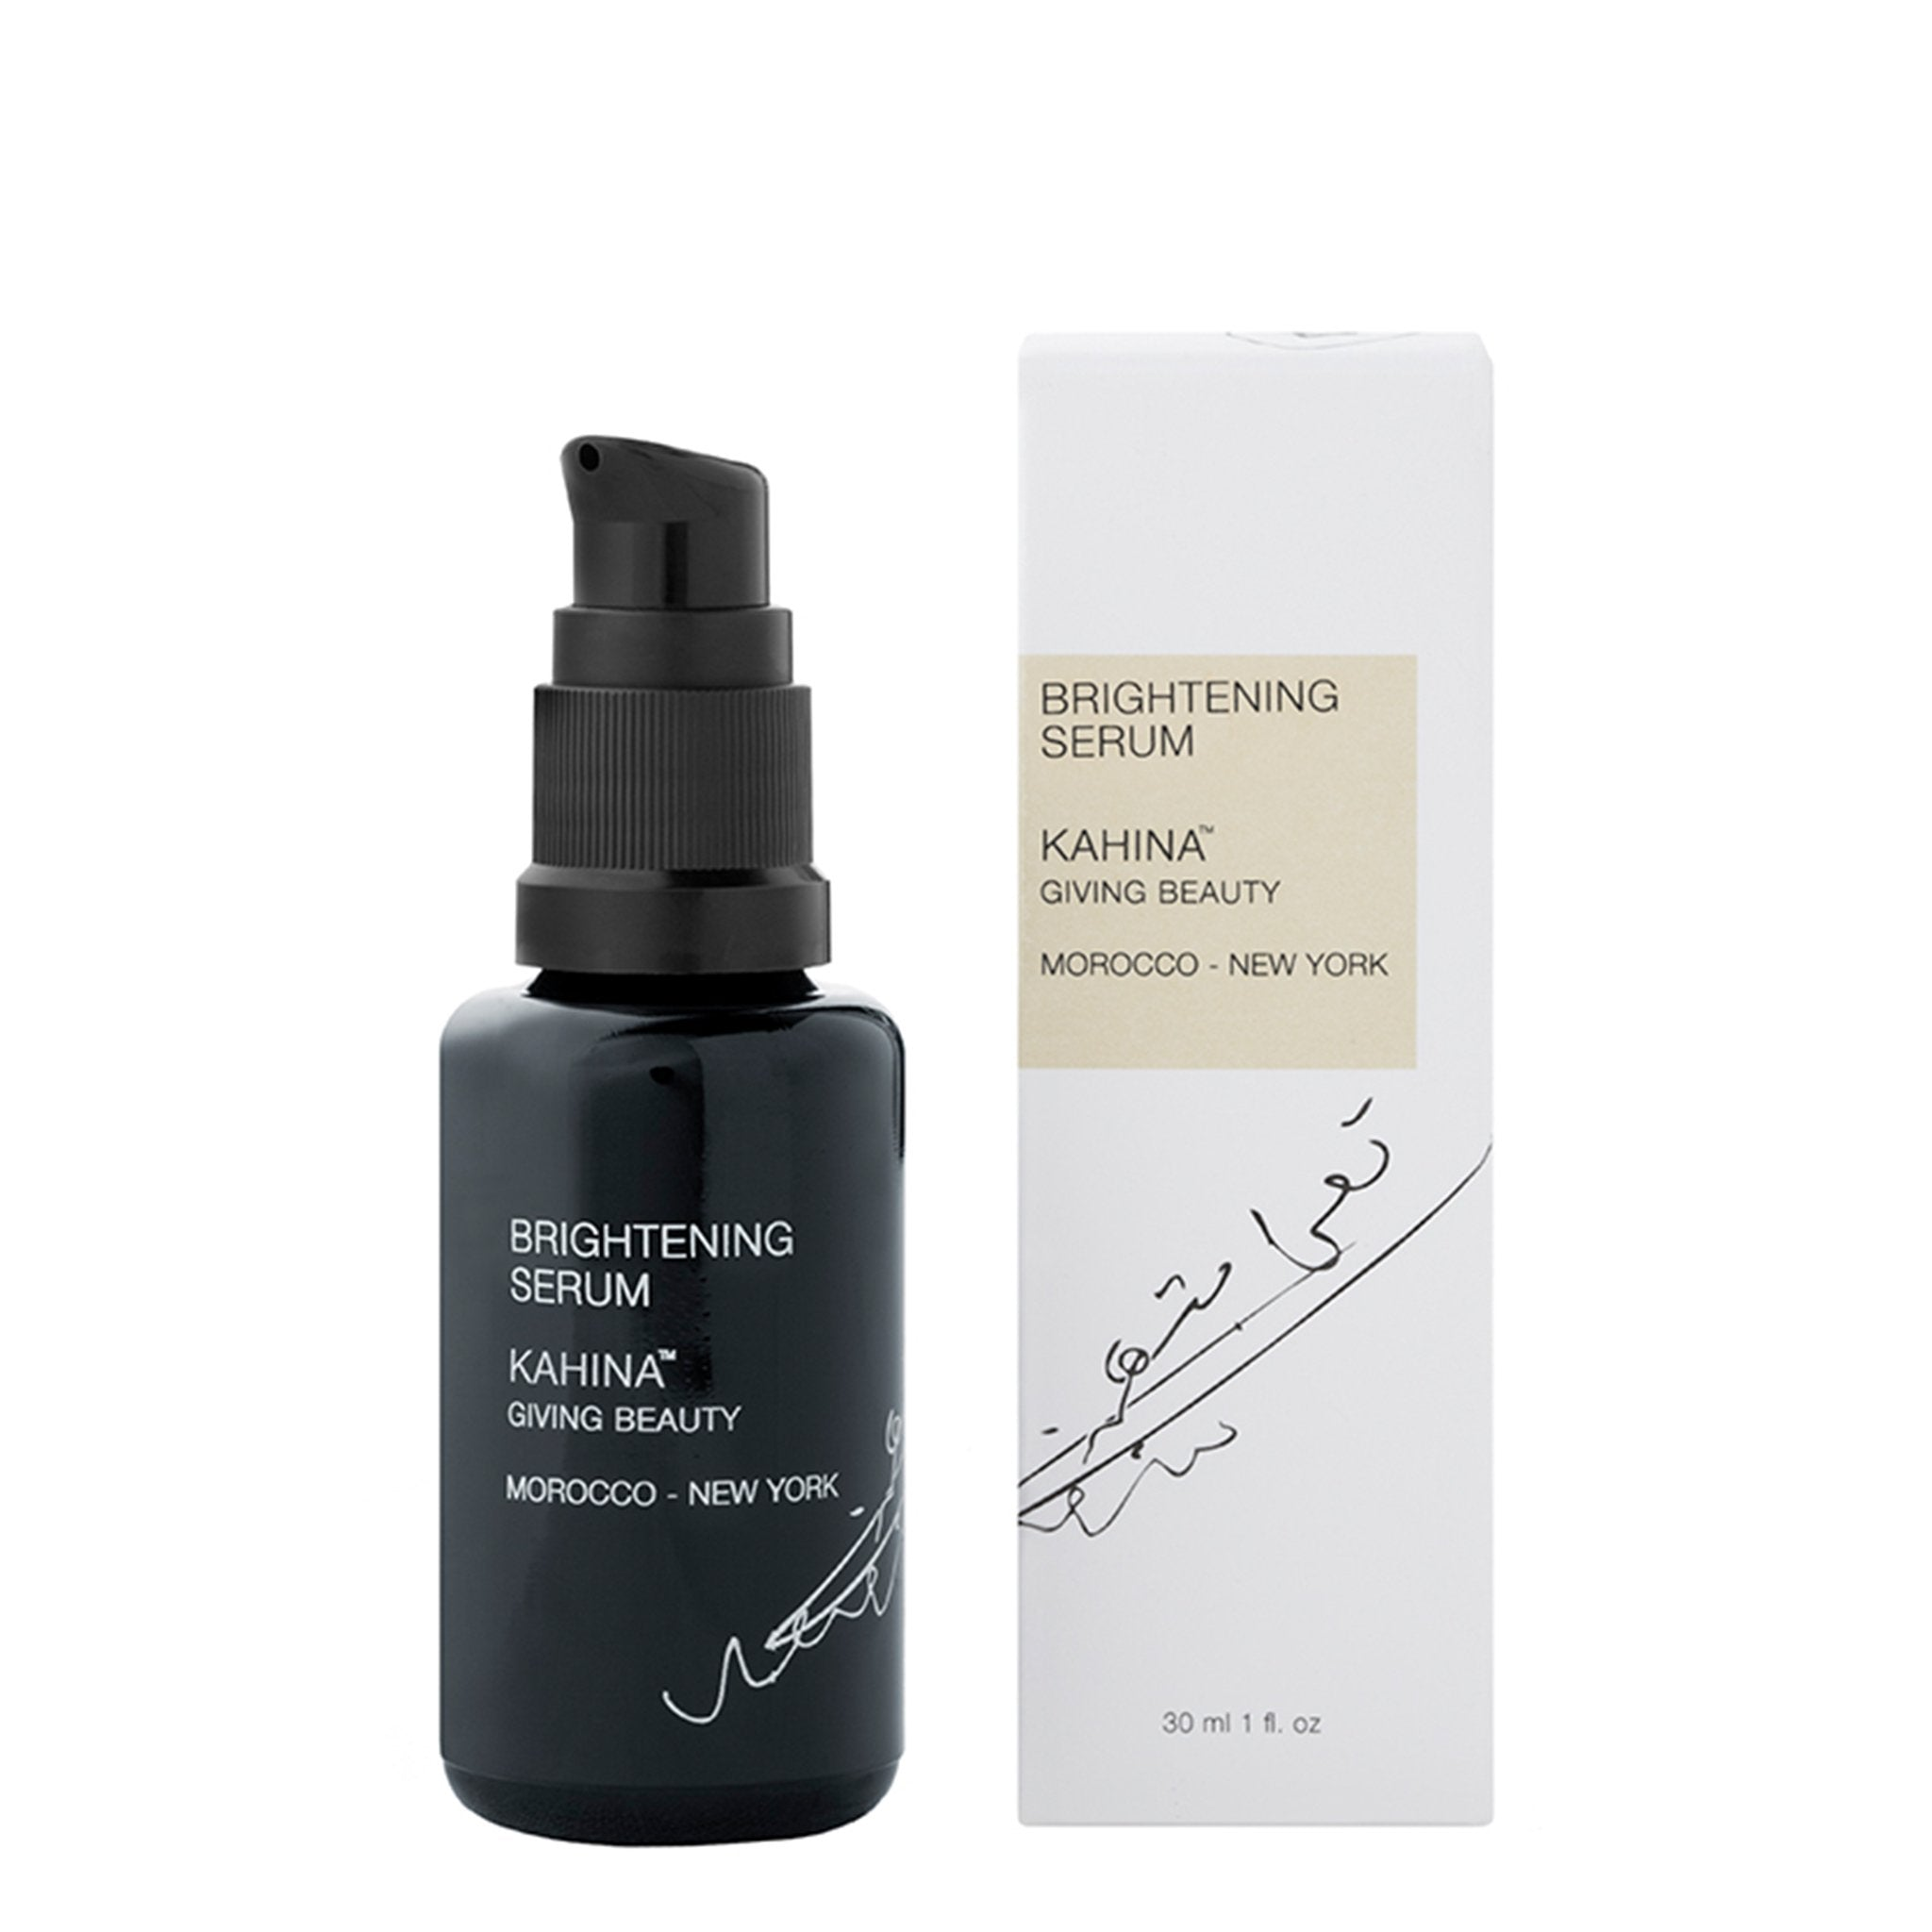 Kahina Giving Beauty - Brightening Serum